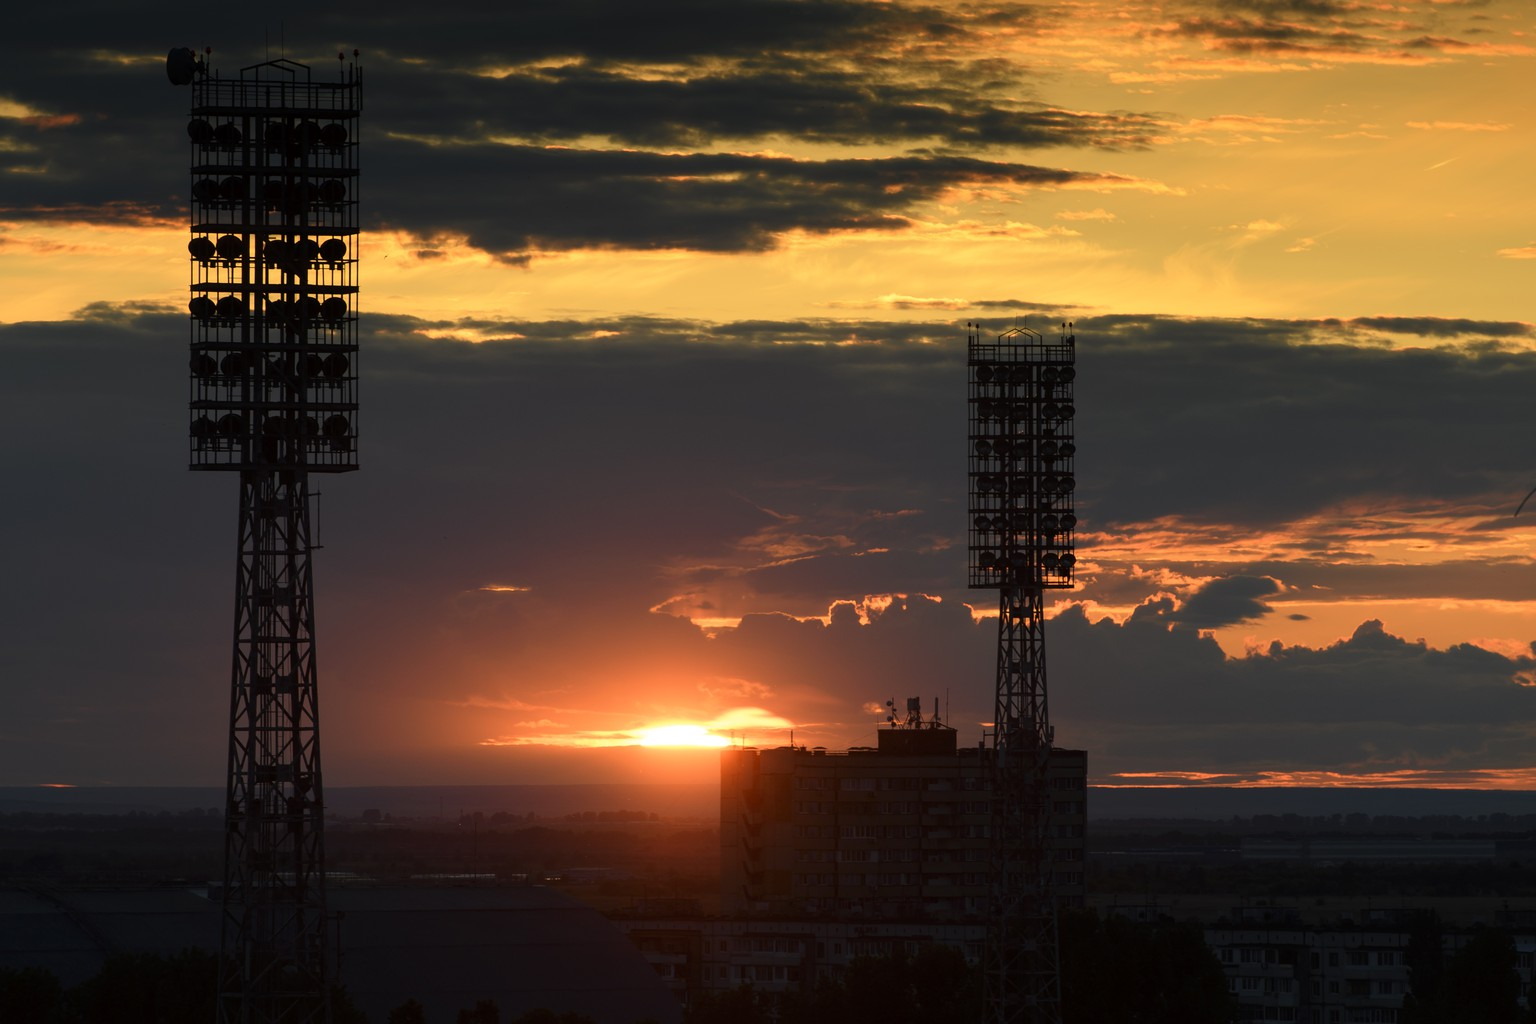 The sun sets behind lighting masts of the Torpedo Stadium where the Switzerland's national soccer team practice, in Togliatti, Russia, Monday, June 11, 2018. The Swiss team arrived in Russia for the FIFA World Cup 2018 taking place from 14 June until 15 July 2018. Team Switzerland is based in Togliatti in the Samara district. (KEYSTONE/Laurent Gillieron)